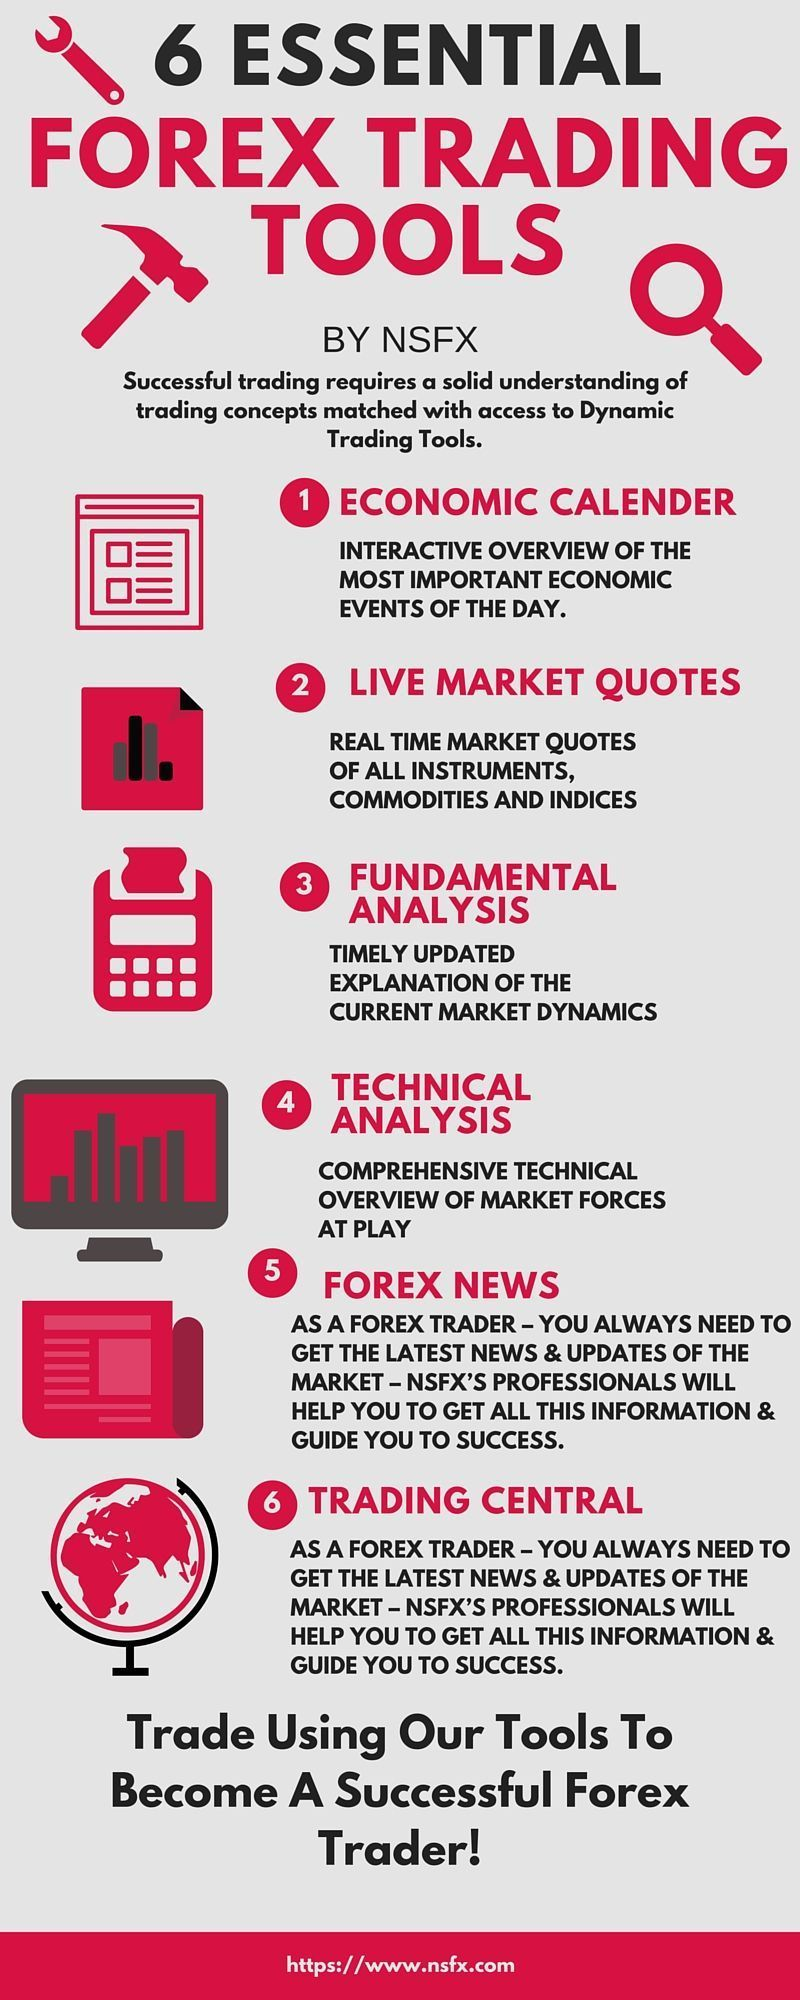 6 Essential Forex Trading Tools Do You Have A High Probability